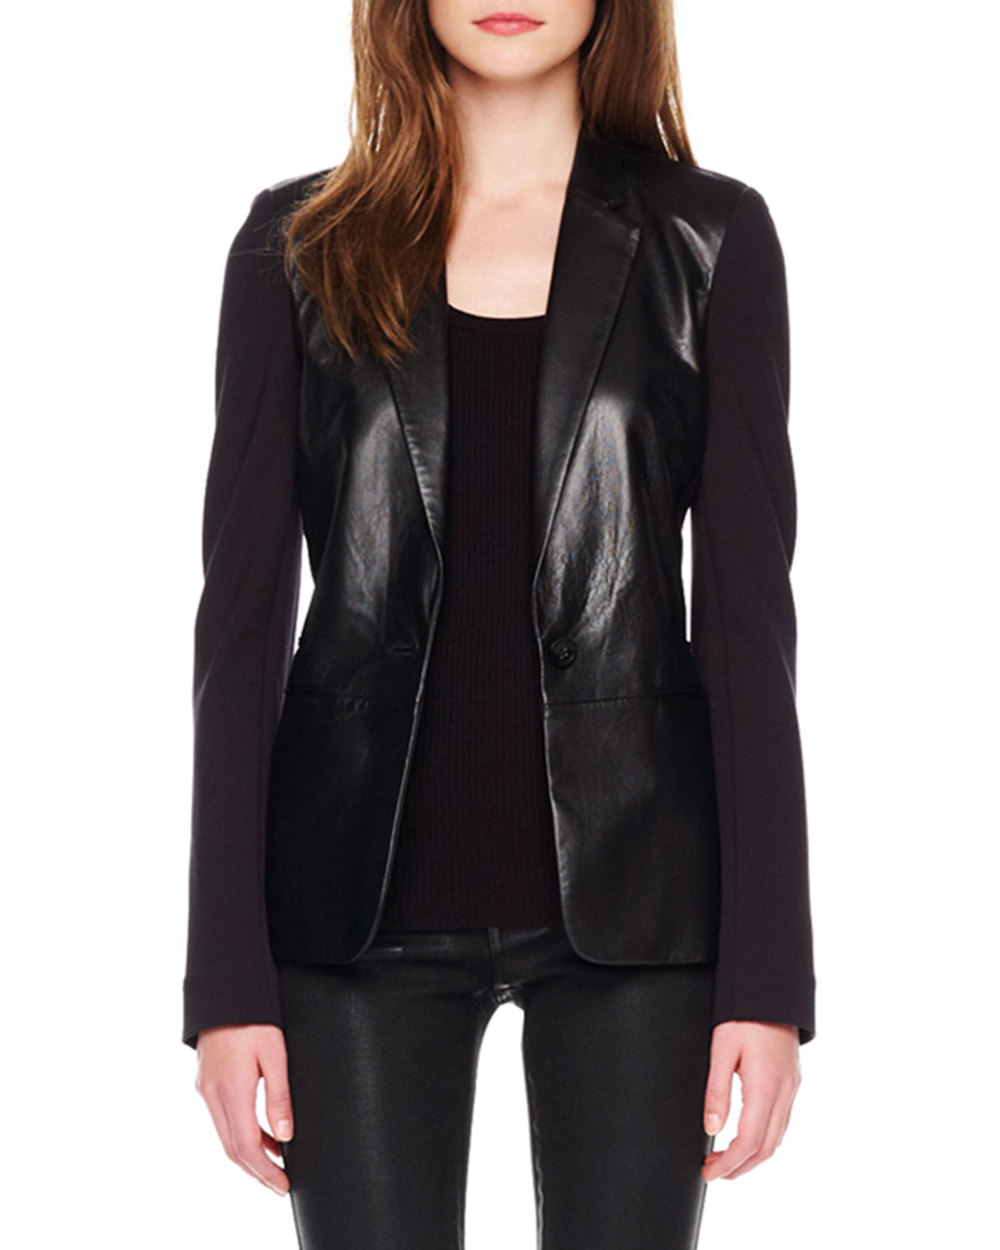 MICHAEL Michael Kors   Ponte/Leather Blazer & Waxed Skinny Jeans, $173